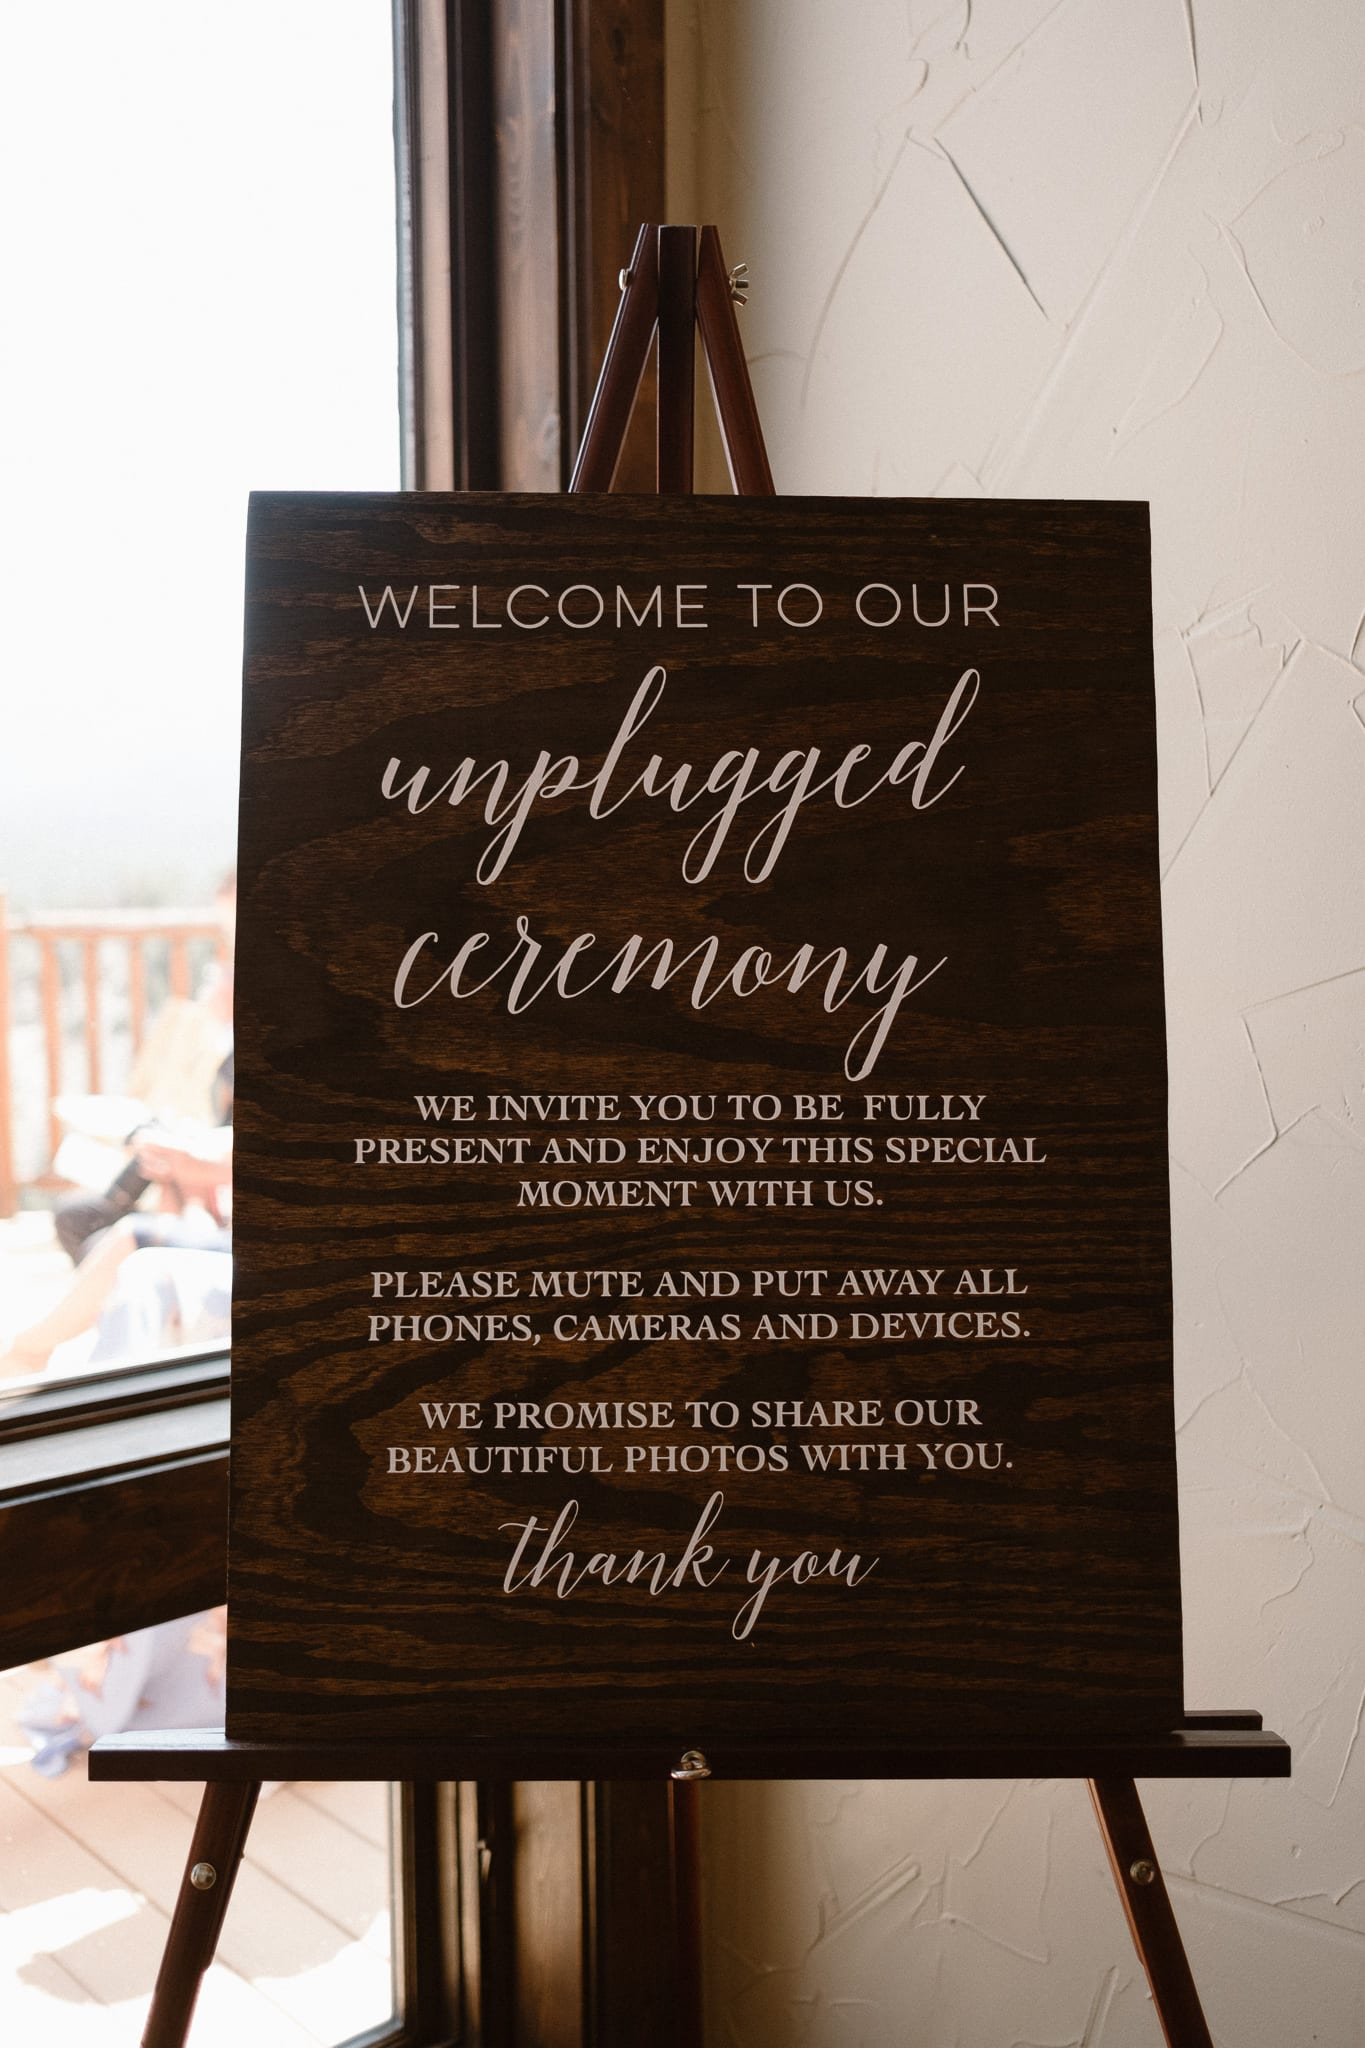 Unplugged wedding ceremony sign.